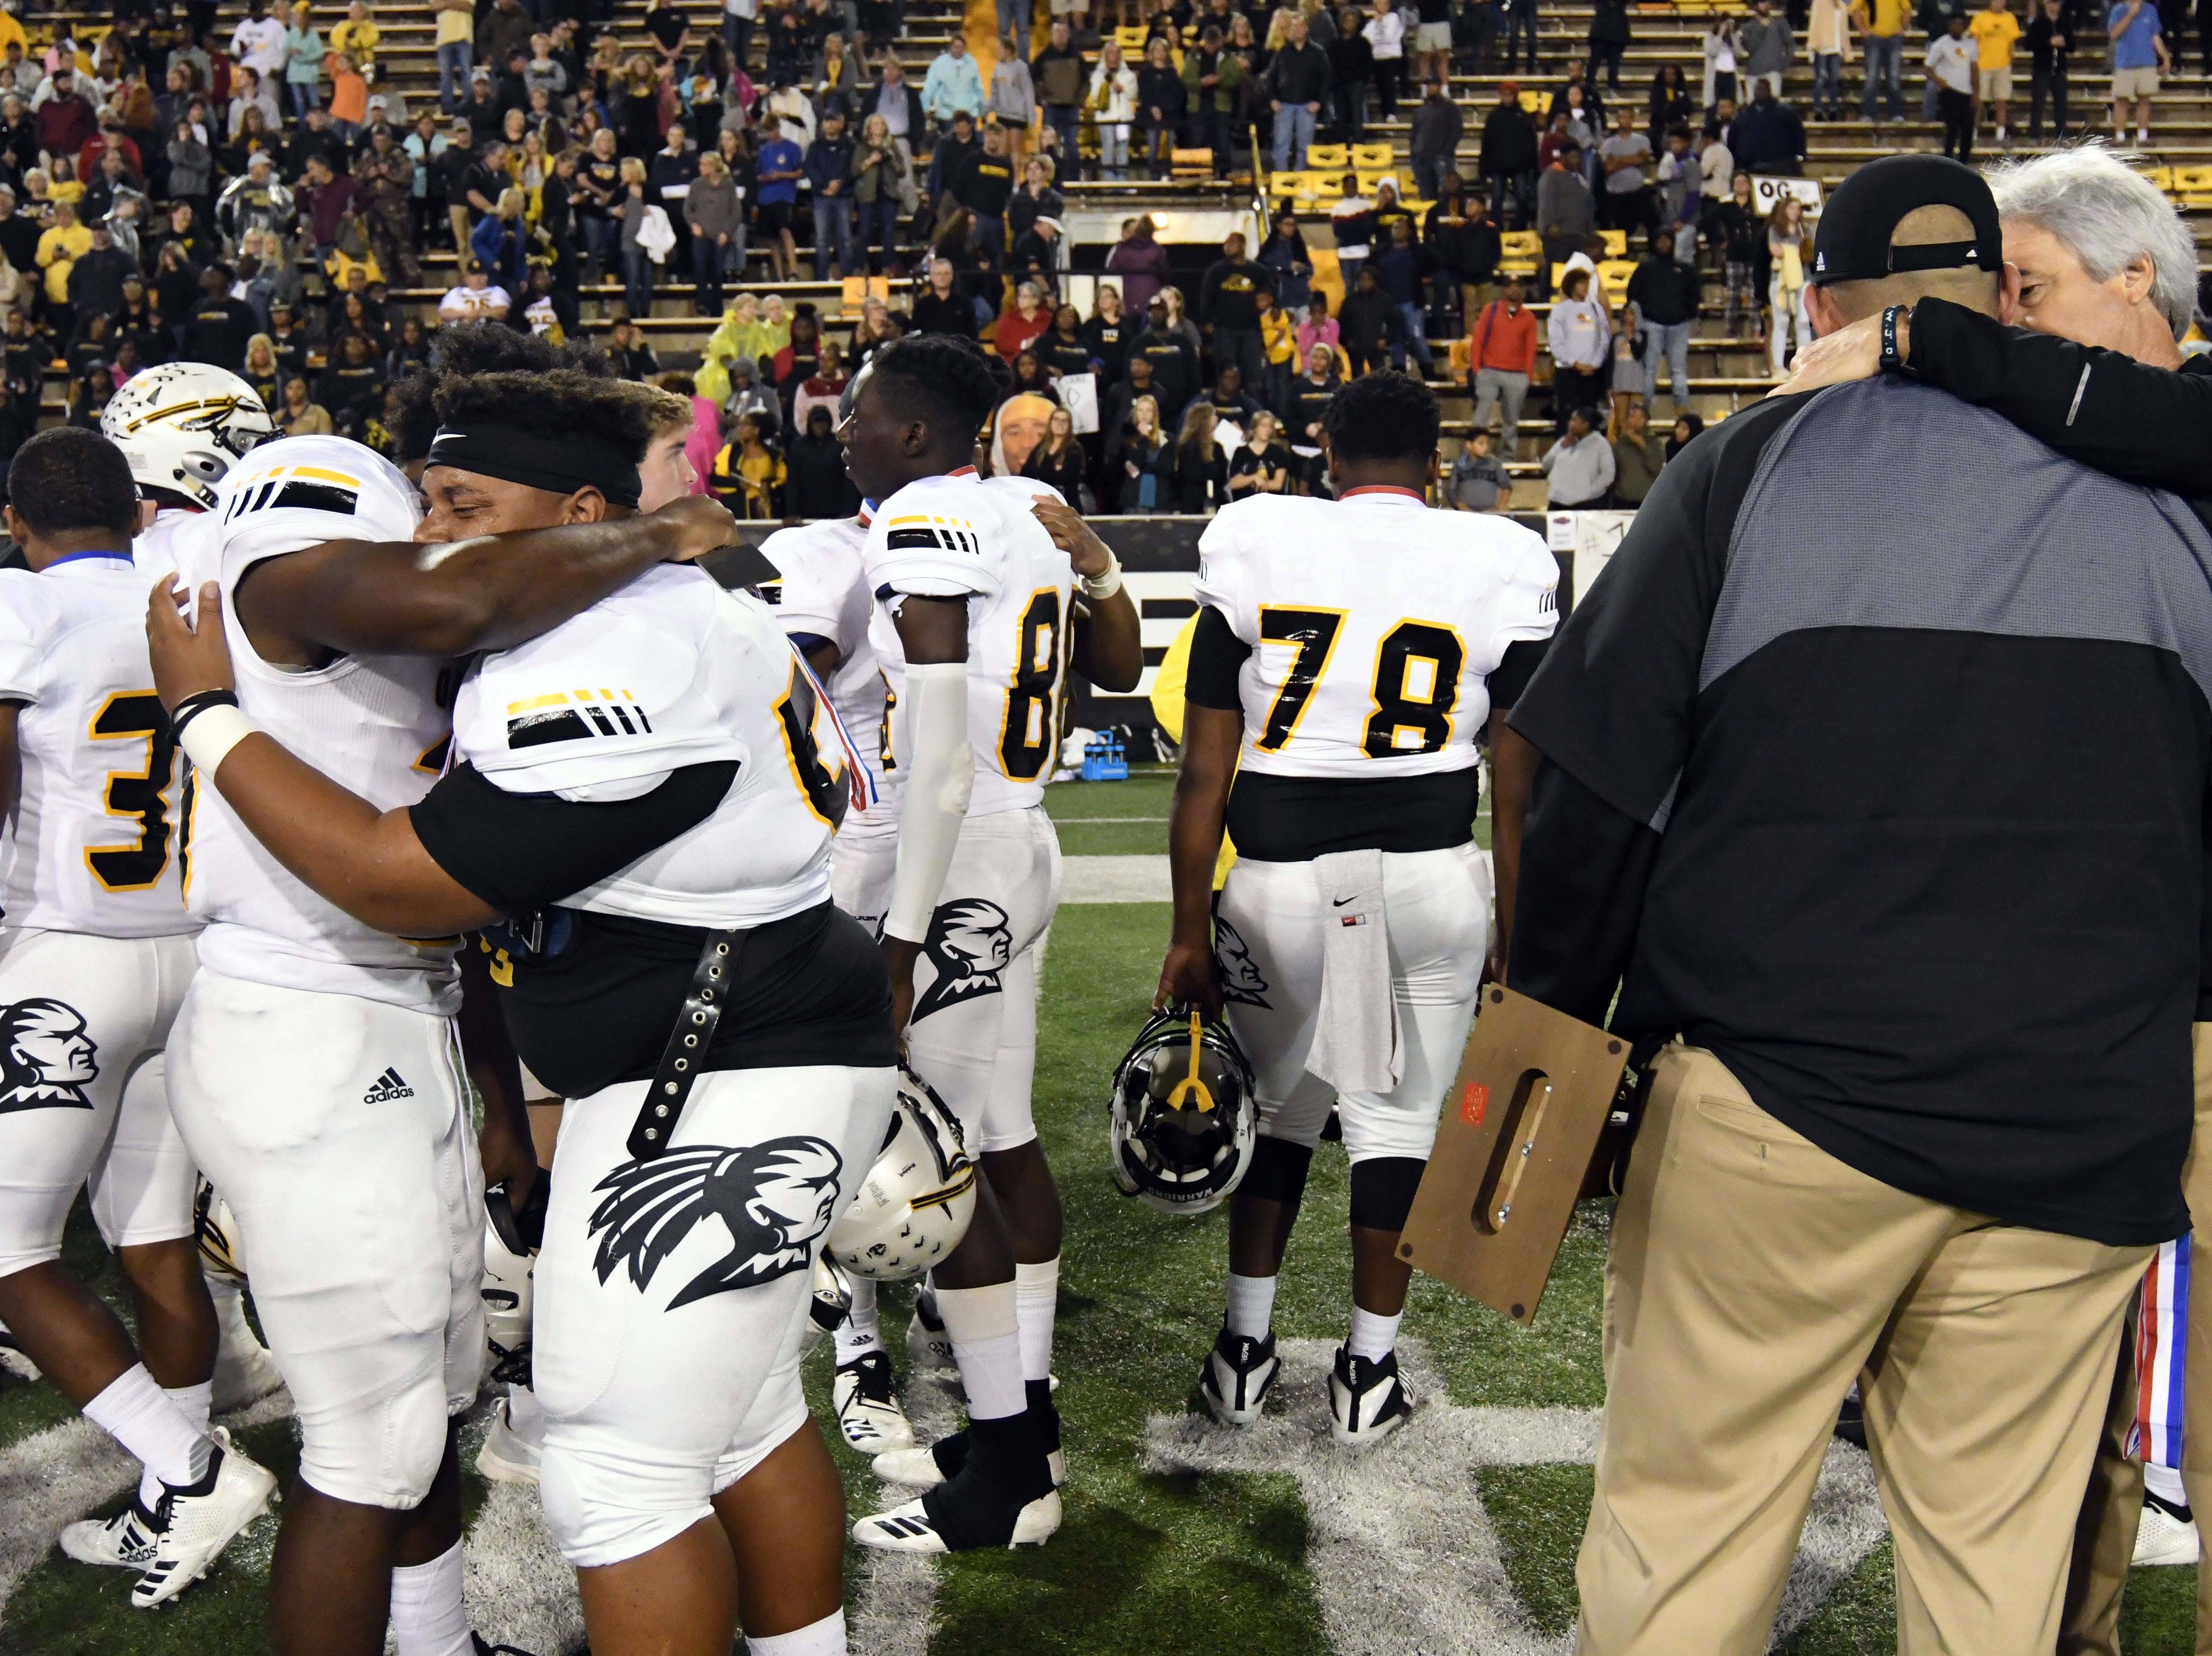 Oak Grove players and coaches comfort each other after losing to Horn Lake  in the 6A state championship game at M.M. Roberts Stadium in Hattiesburg on Friday, November 30, 2018.